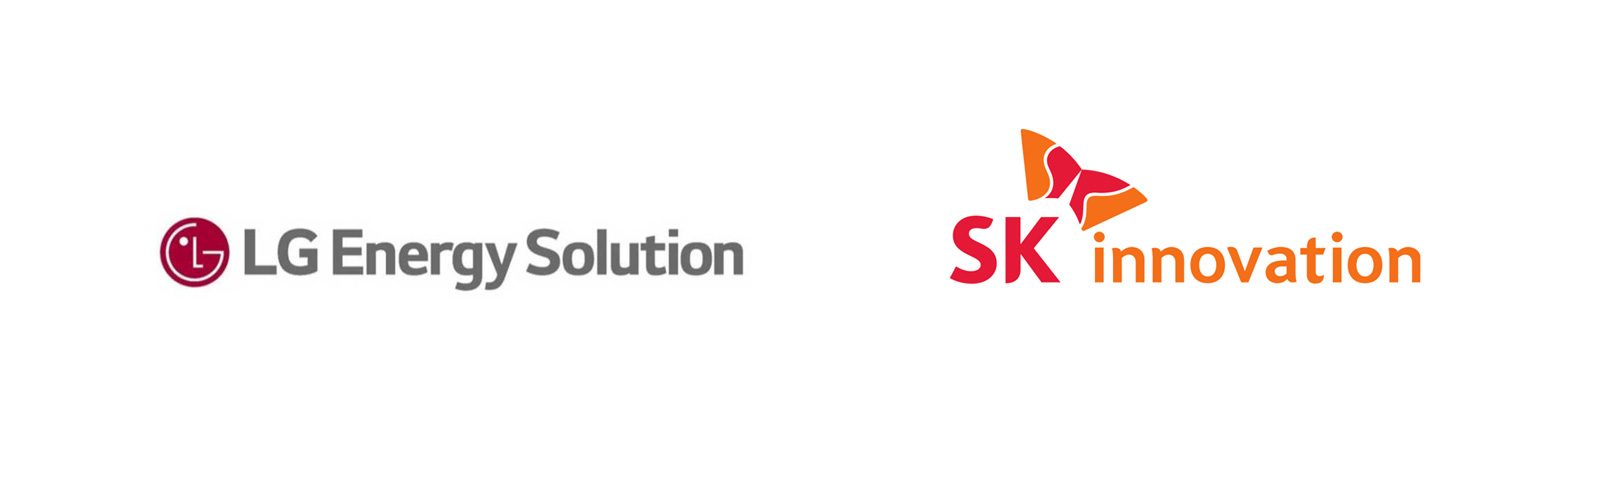 SK Innovation and LG Energy Solution reach an agreement to close the ITC matter and all global and domestic litigation